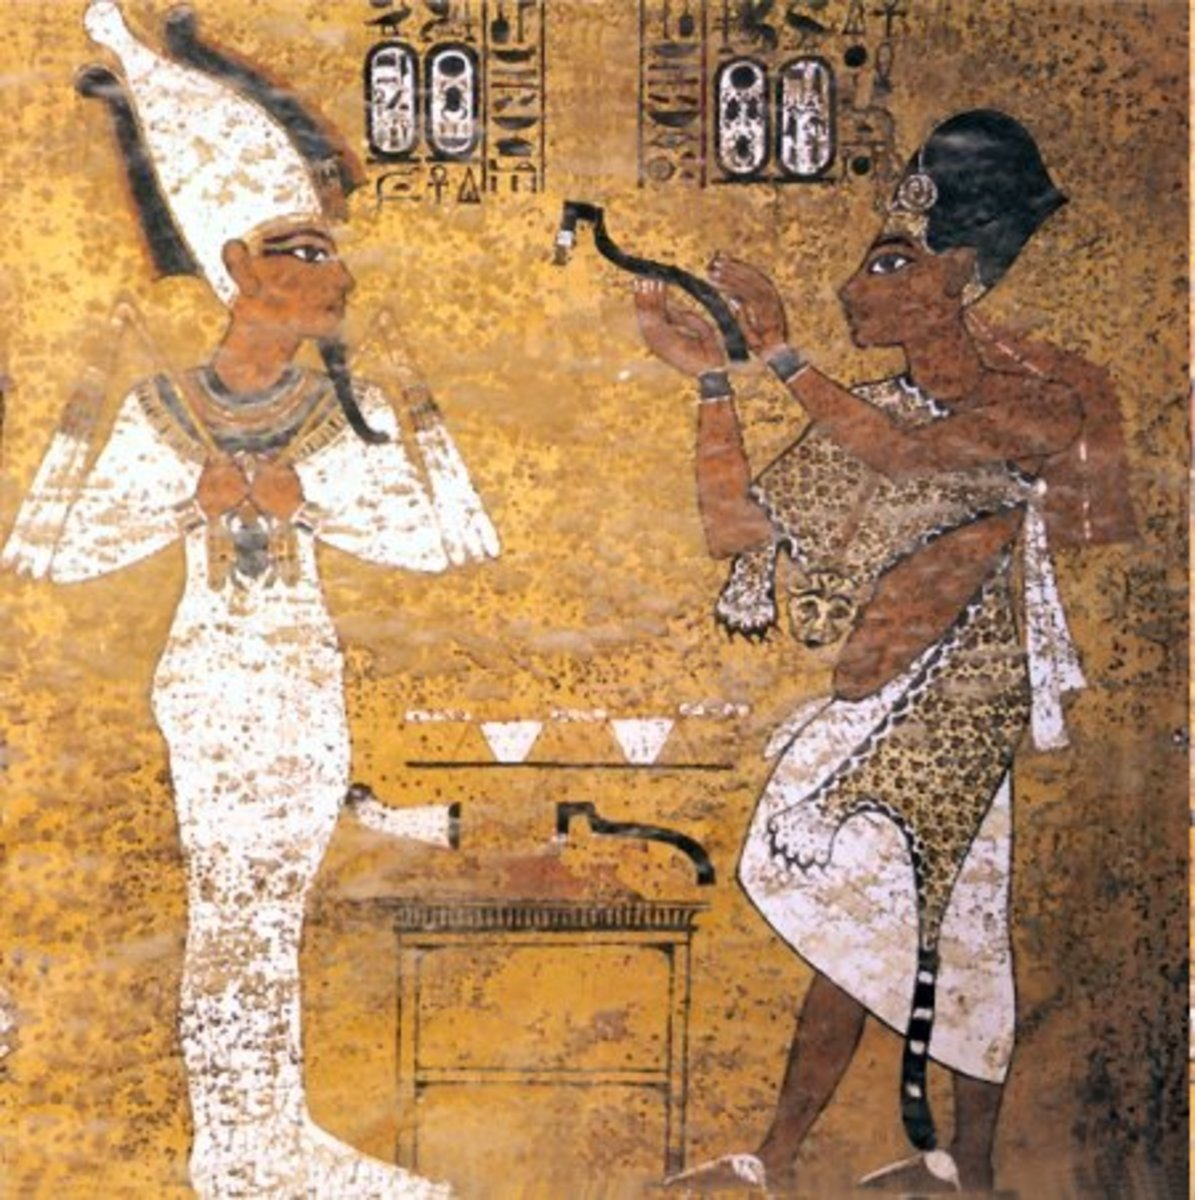 Ay performing the opening of the mouth ritual on Tutankhamun. Tutankhamun is shown here as a fully-fledged Osiris.